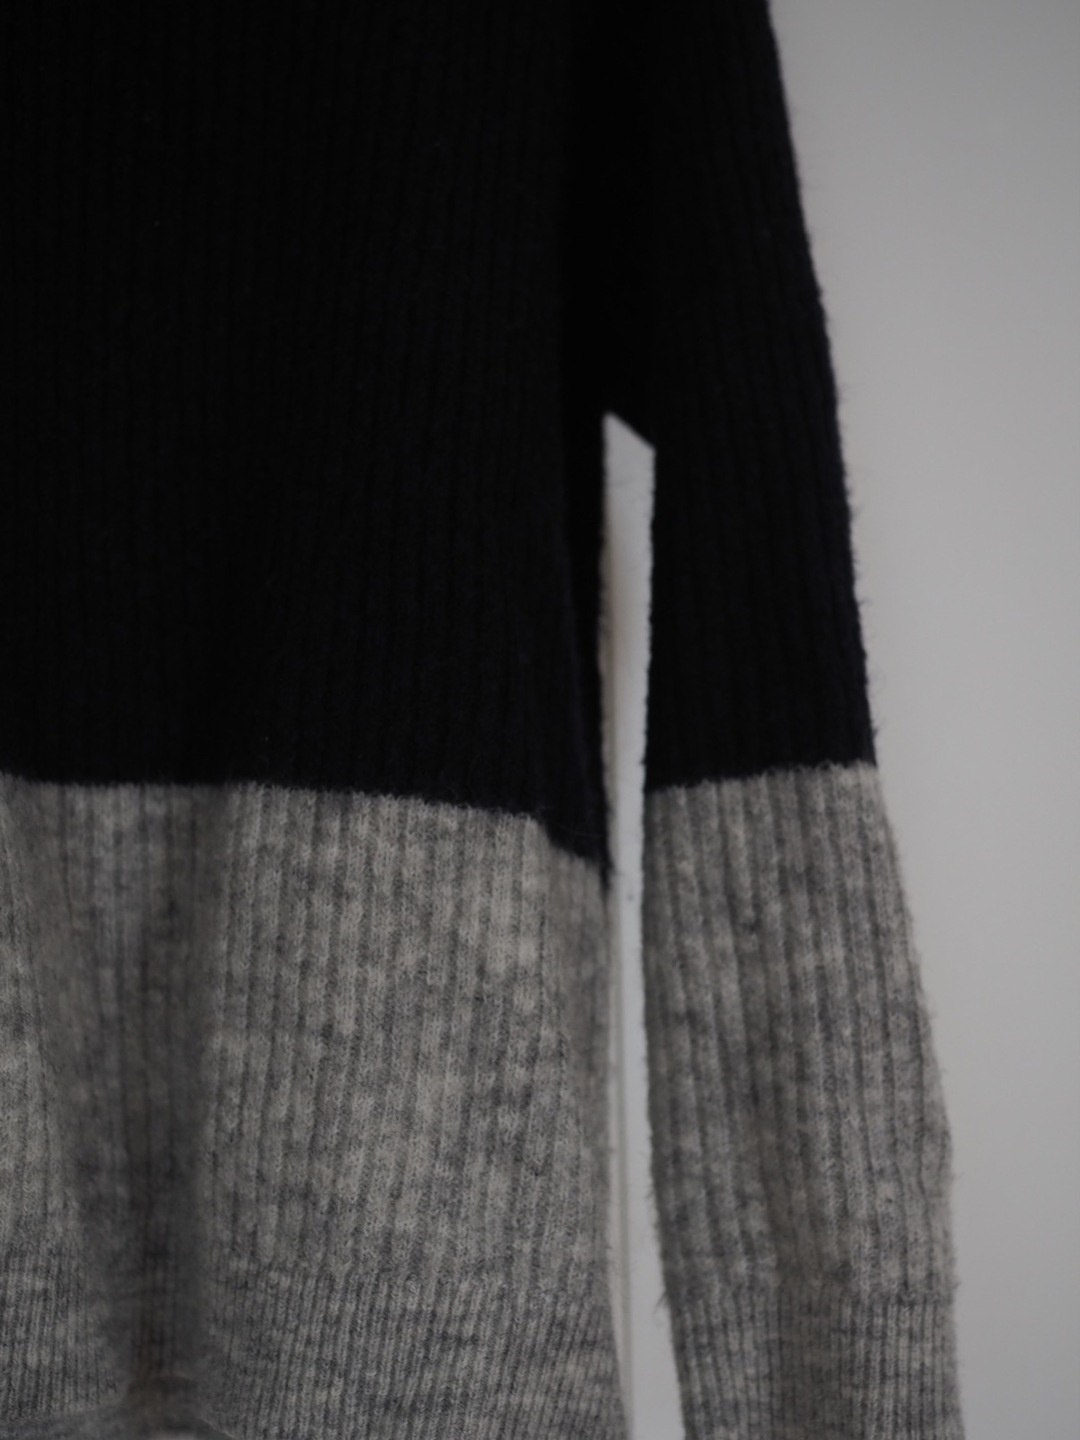 Women's jumpers & cardigans - ENVII photo 2